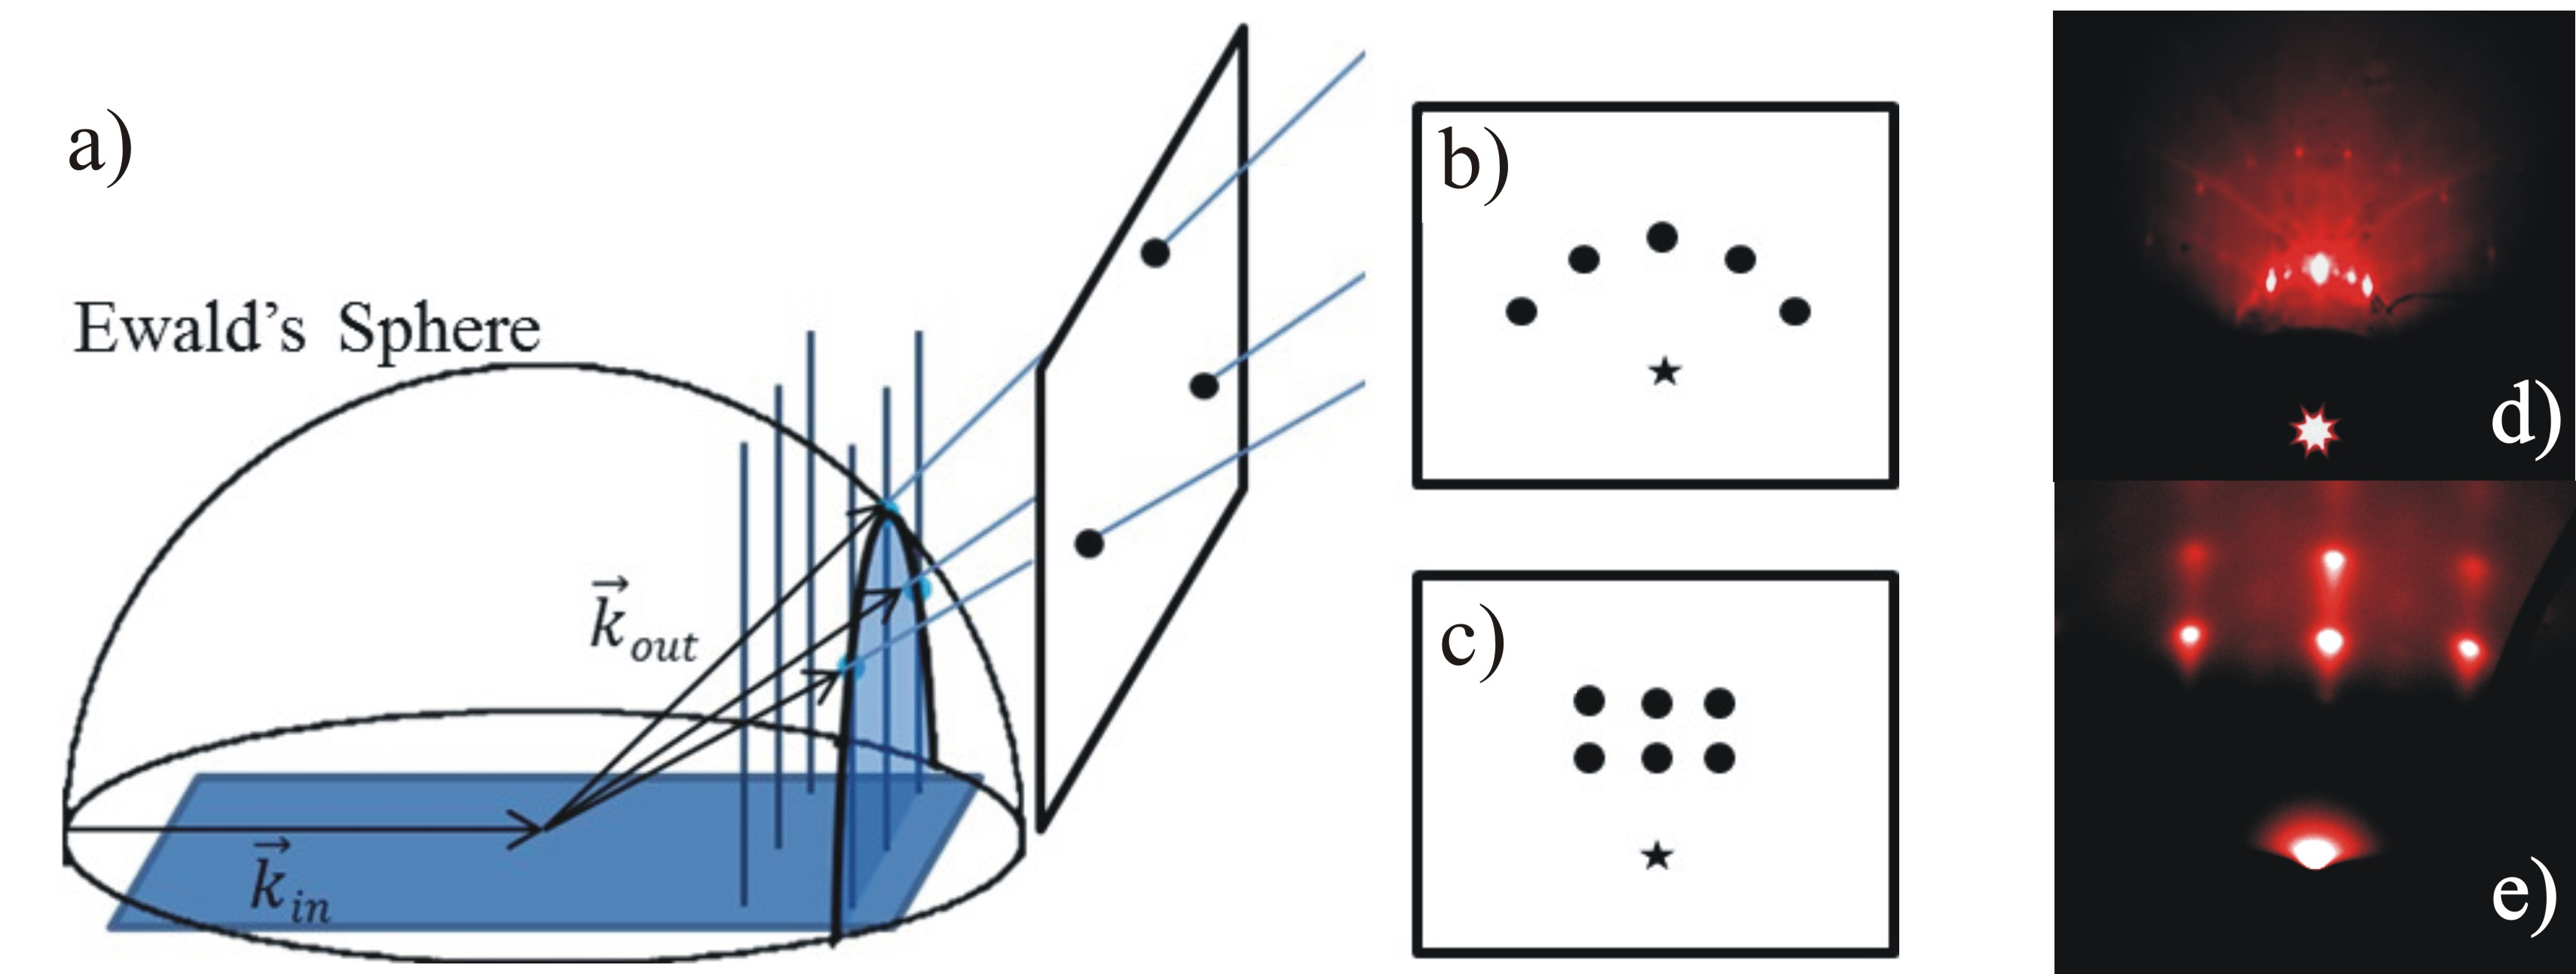 Working principle of RHEED. Intersection of the Ewald's Sphere with lattice rods in reciprocal space (a). Resulting diffraction pattern in case of a flat (b) and a rough surface (c). A part of the direct beam may be visible (star).d) RHEED pattern of a flat MgO substrate surface. e) RHEED image of Pt islands grown on SrTiO<sub>3</sub>. Images by Aline Fluri and Sandra Temmel.